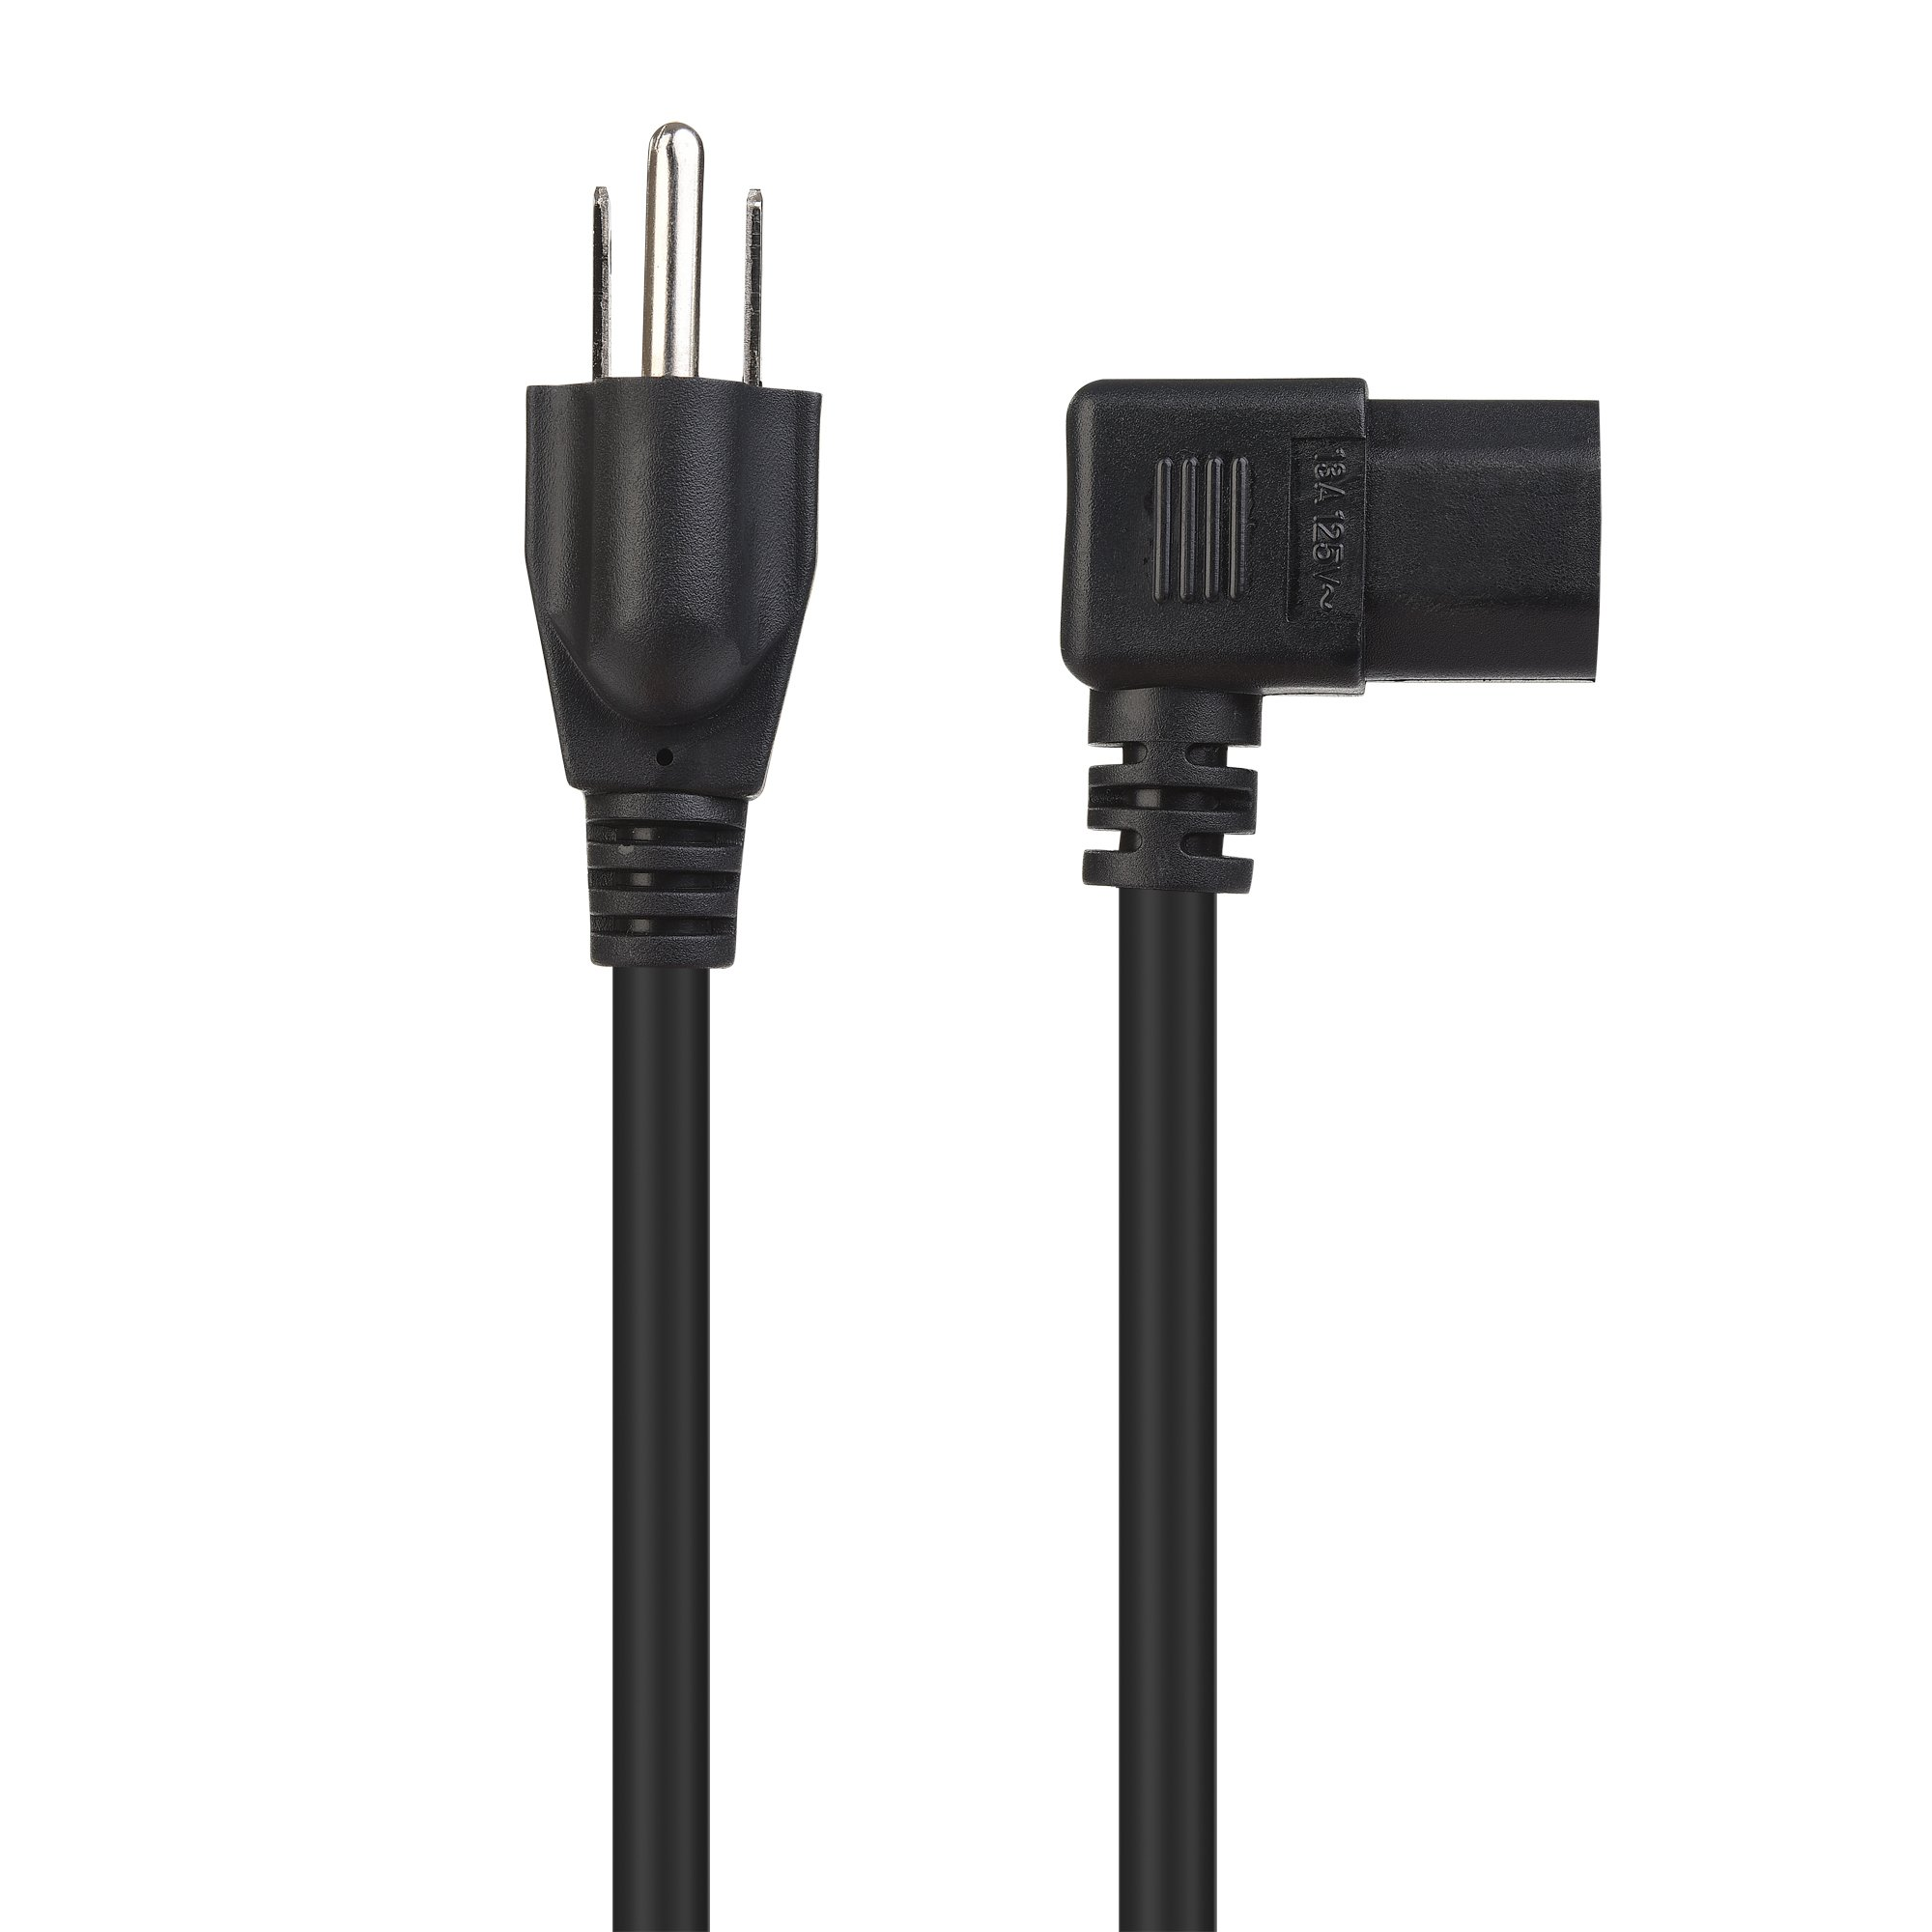 Cable Matters 2-Pack 16 AWG Right Angle Power Cord (Power Cable) 6 Feet (NEMA 5-15P to Angled IEC C13) by Cable Matters (Image #5)